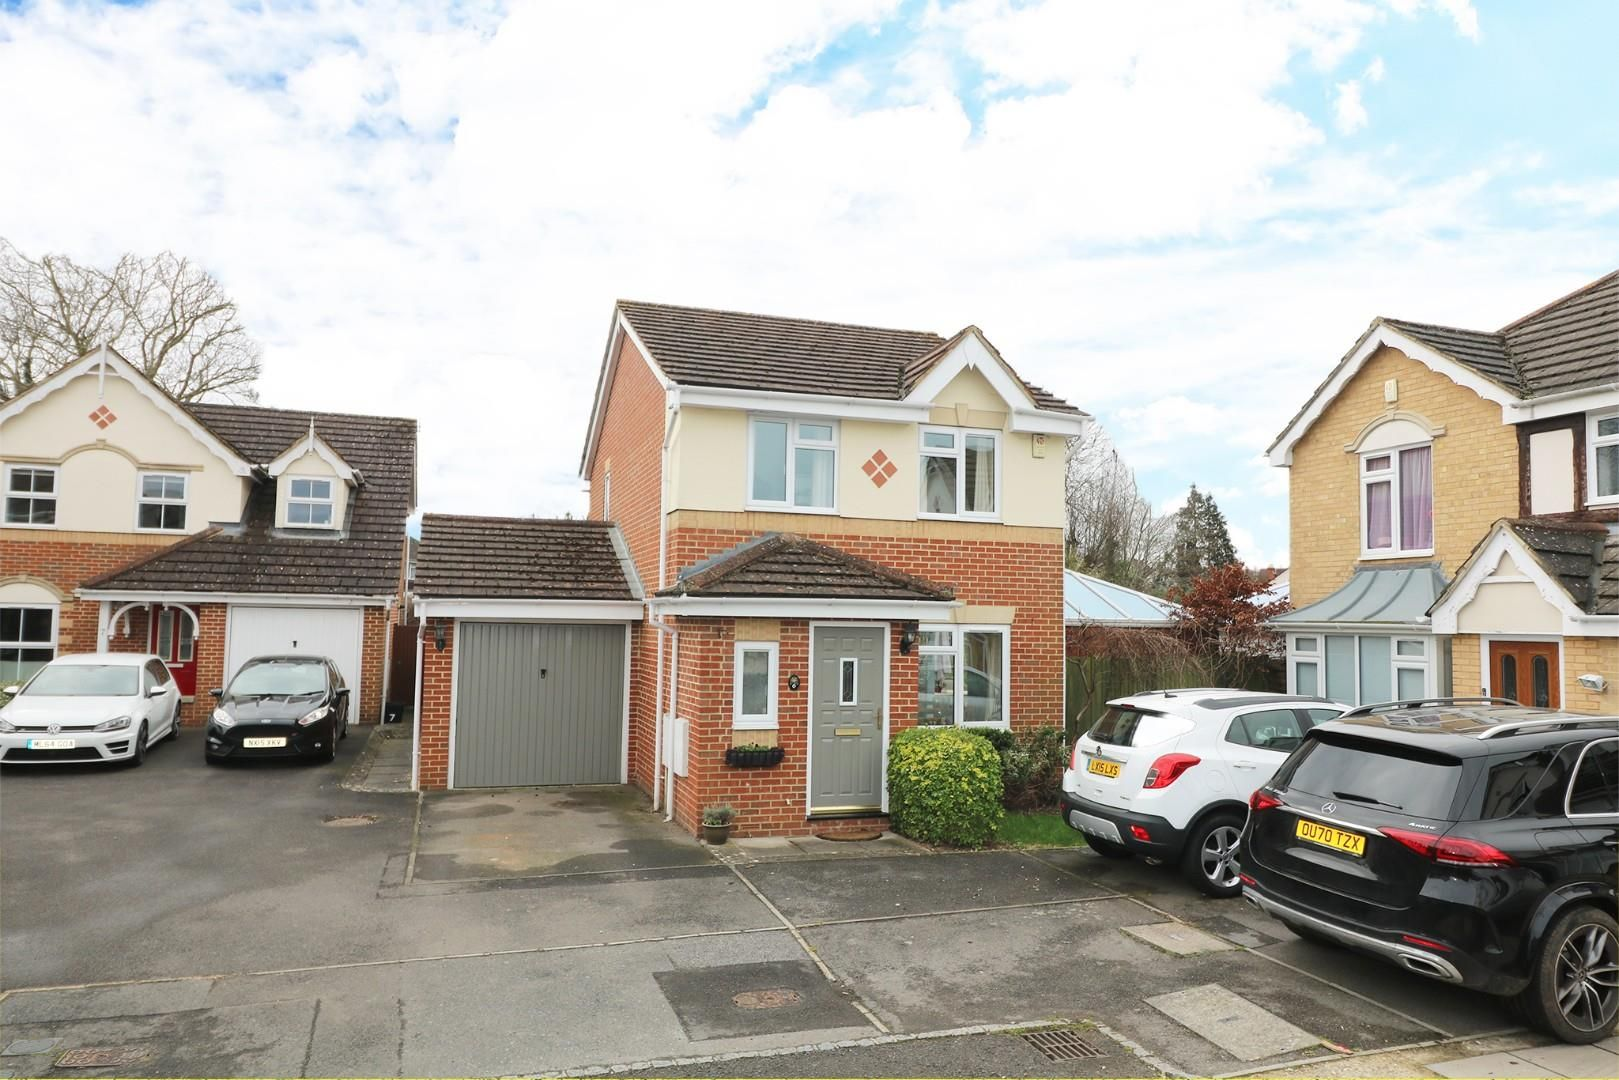 3 bed house for sale in Woodley - Property Image 1